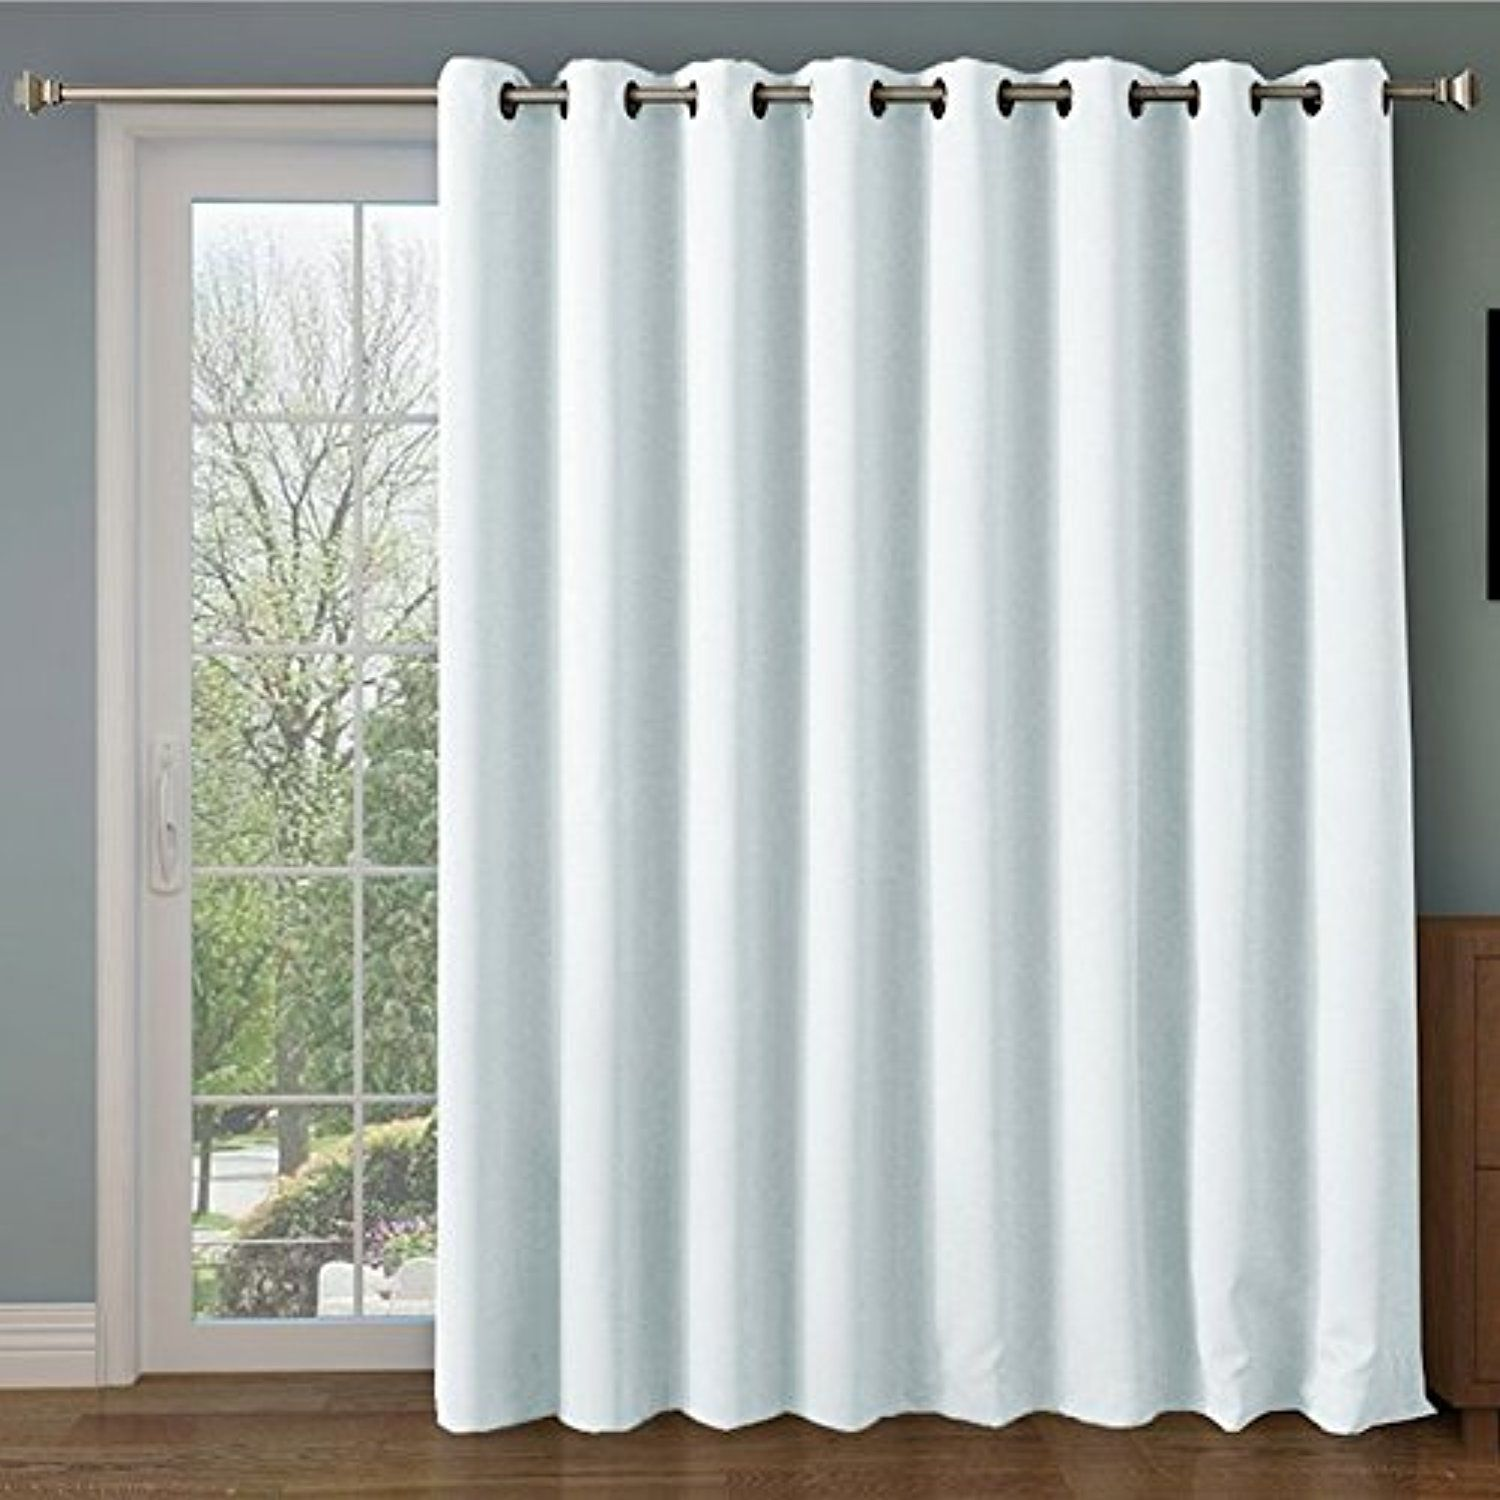 Rhf Room Divider Curtain Panel Blackout Homedcor Curtains Thermal Insulated Blackout Curtains Insulated Curtains